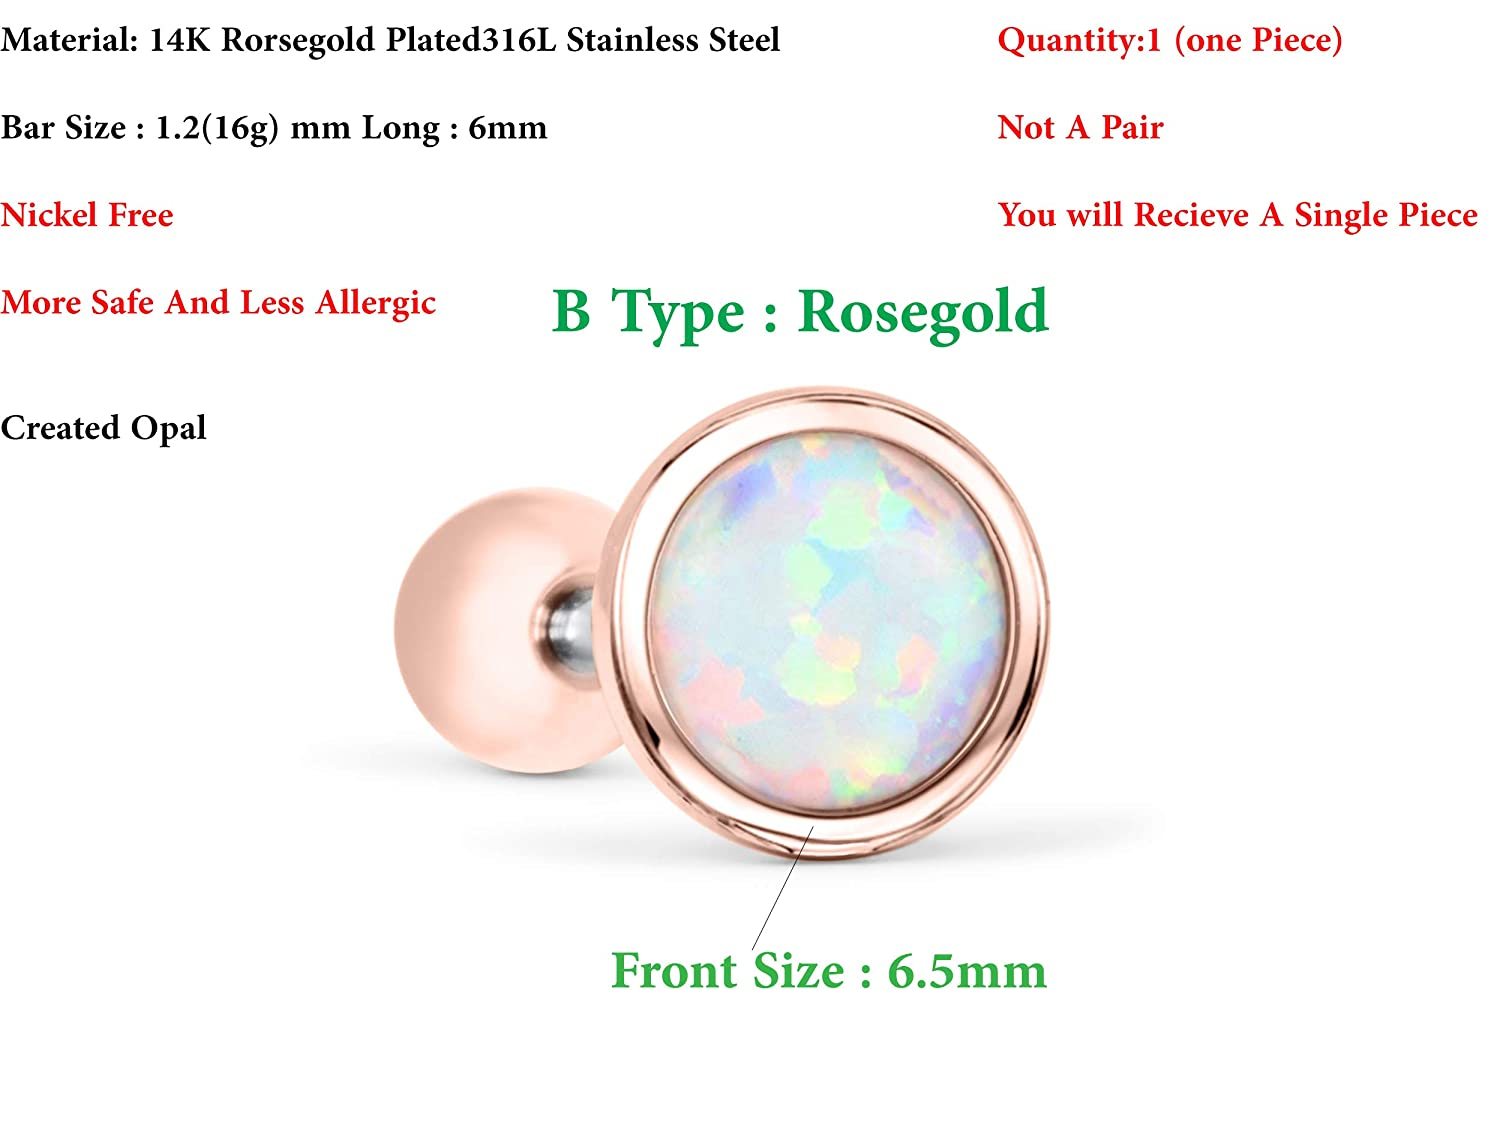 ONDAISY 14k Gold Plated Round Ball Circle Gemstone Created Opal Jewelry Ear Barbell Ball Stud Earring Piercing